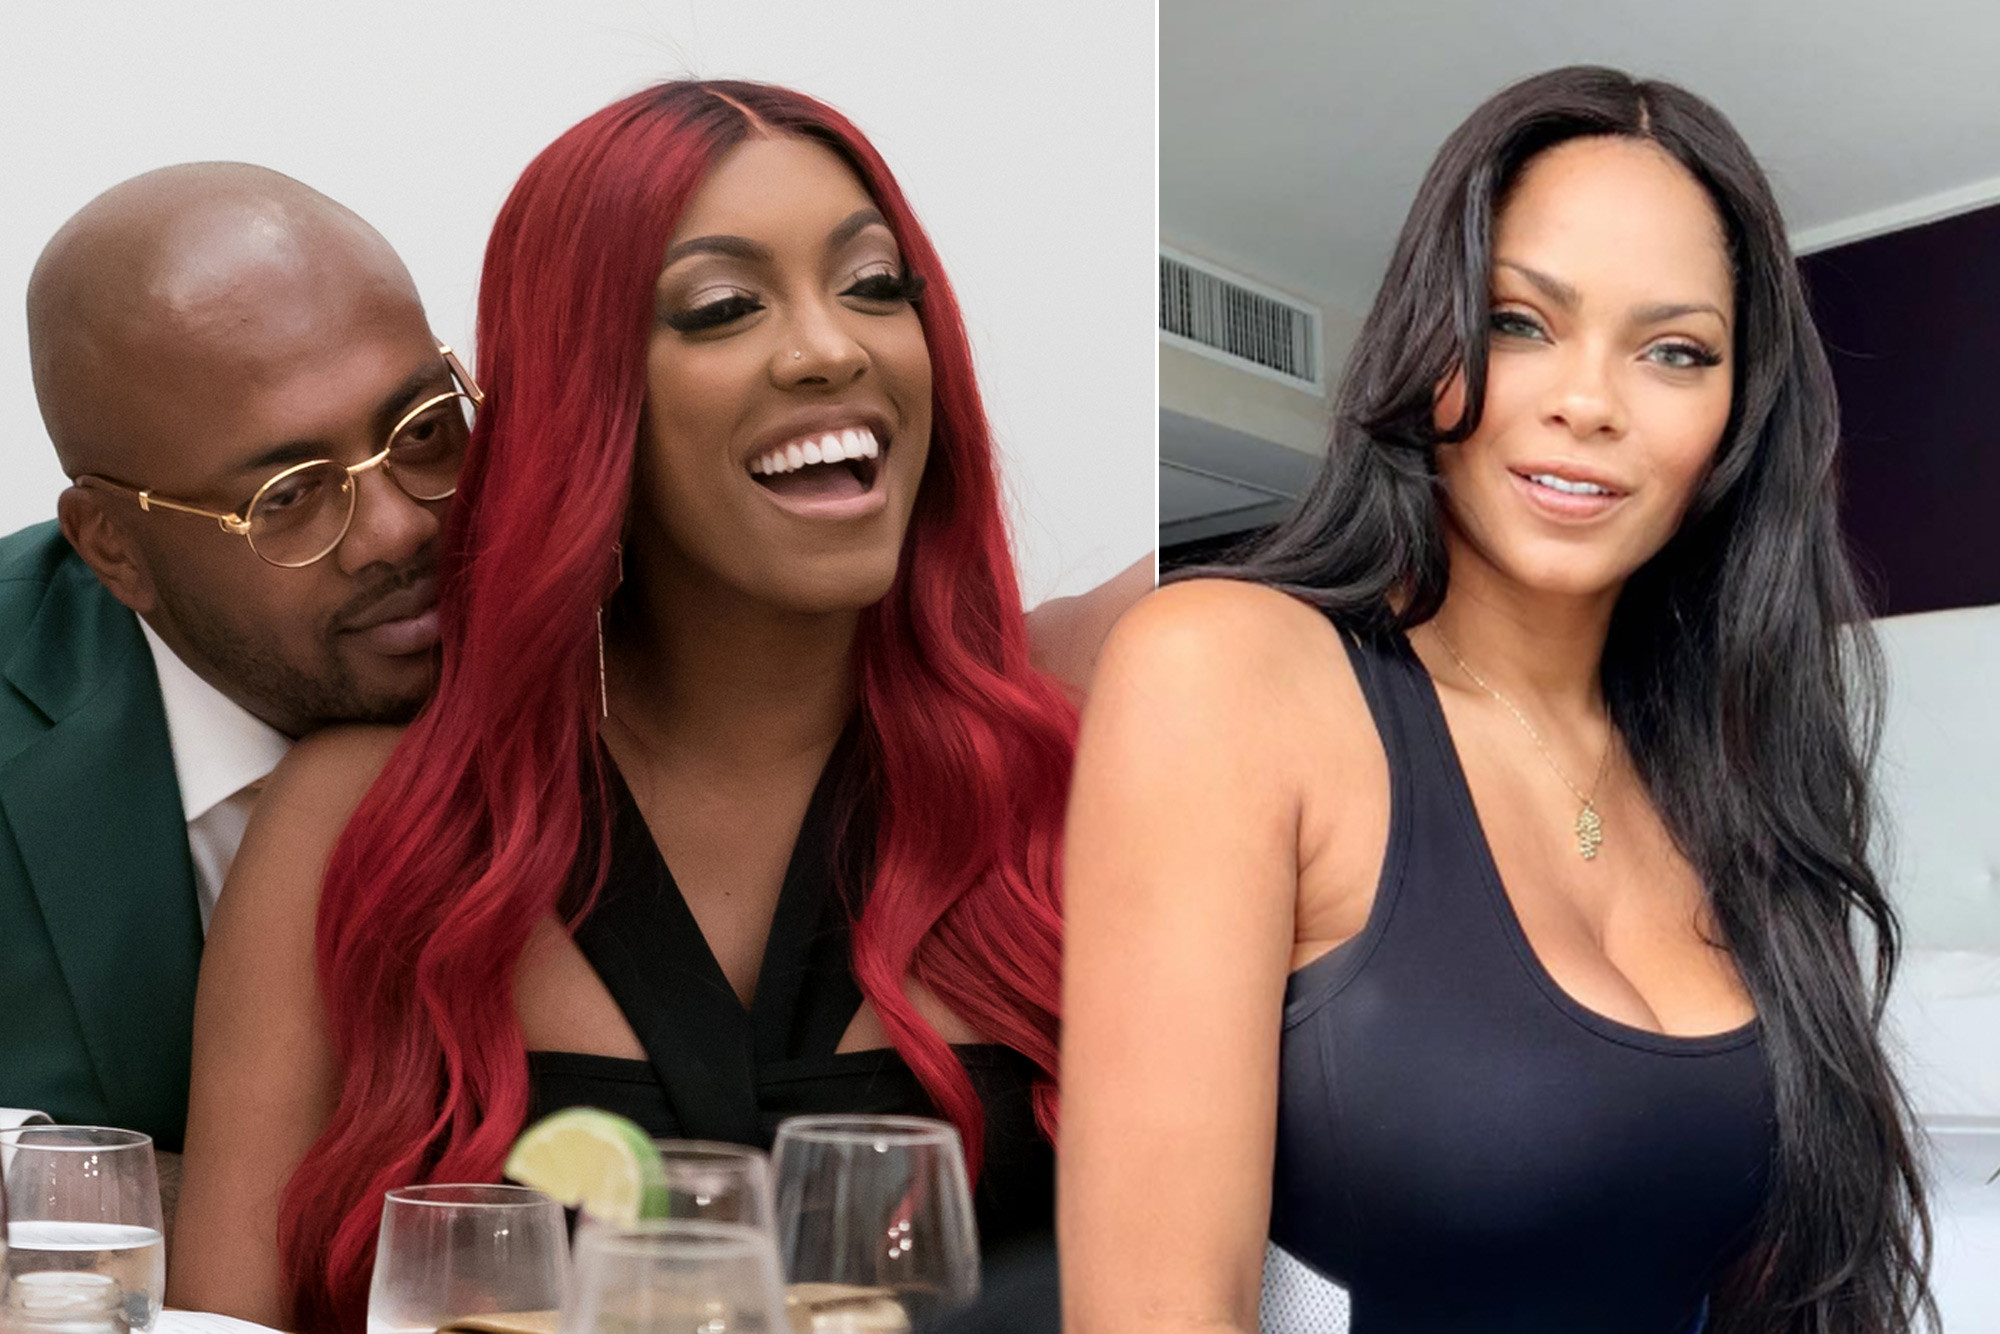 dennis-mckinley-denies-cheating-on-porsha-williams-with-wags-star-sincerely-ward-says-she-doesnt-know-him